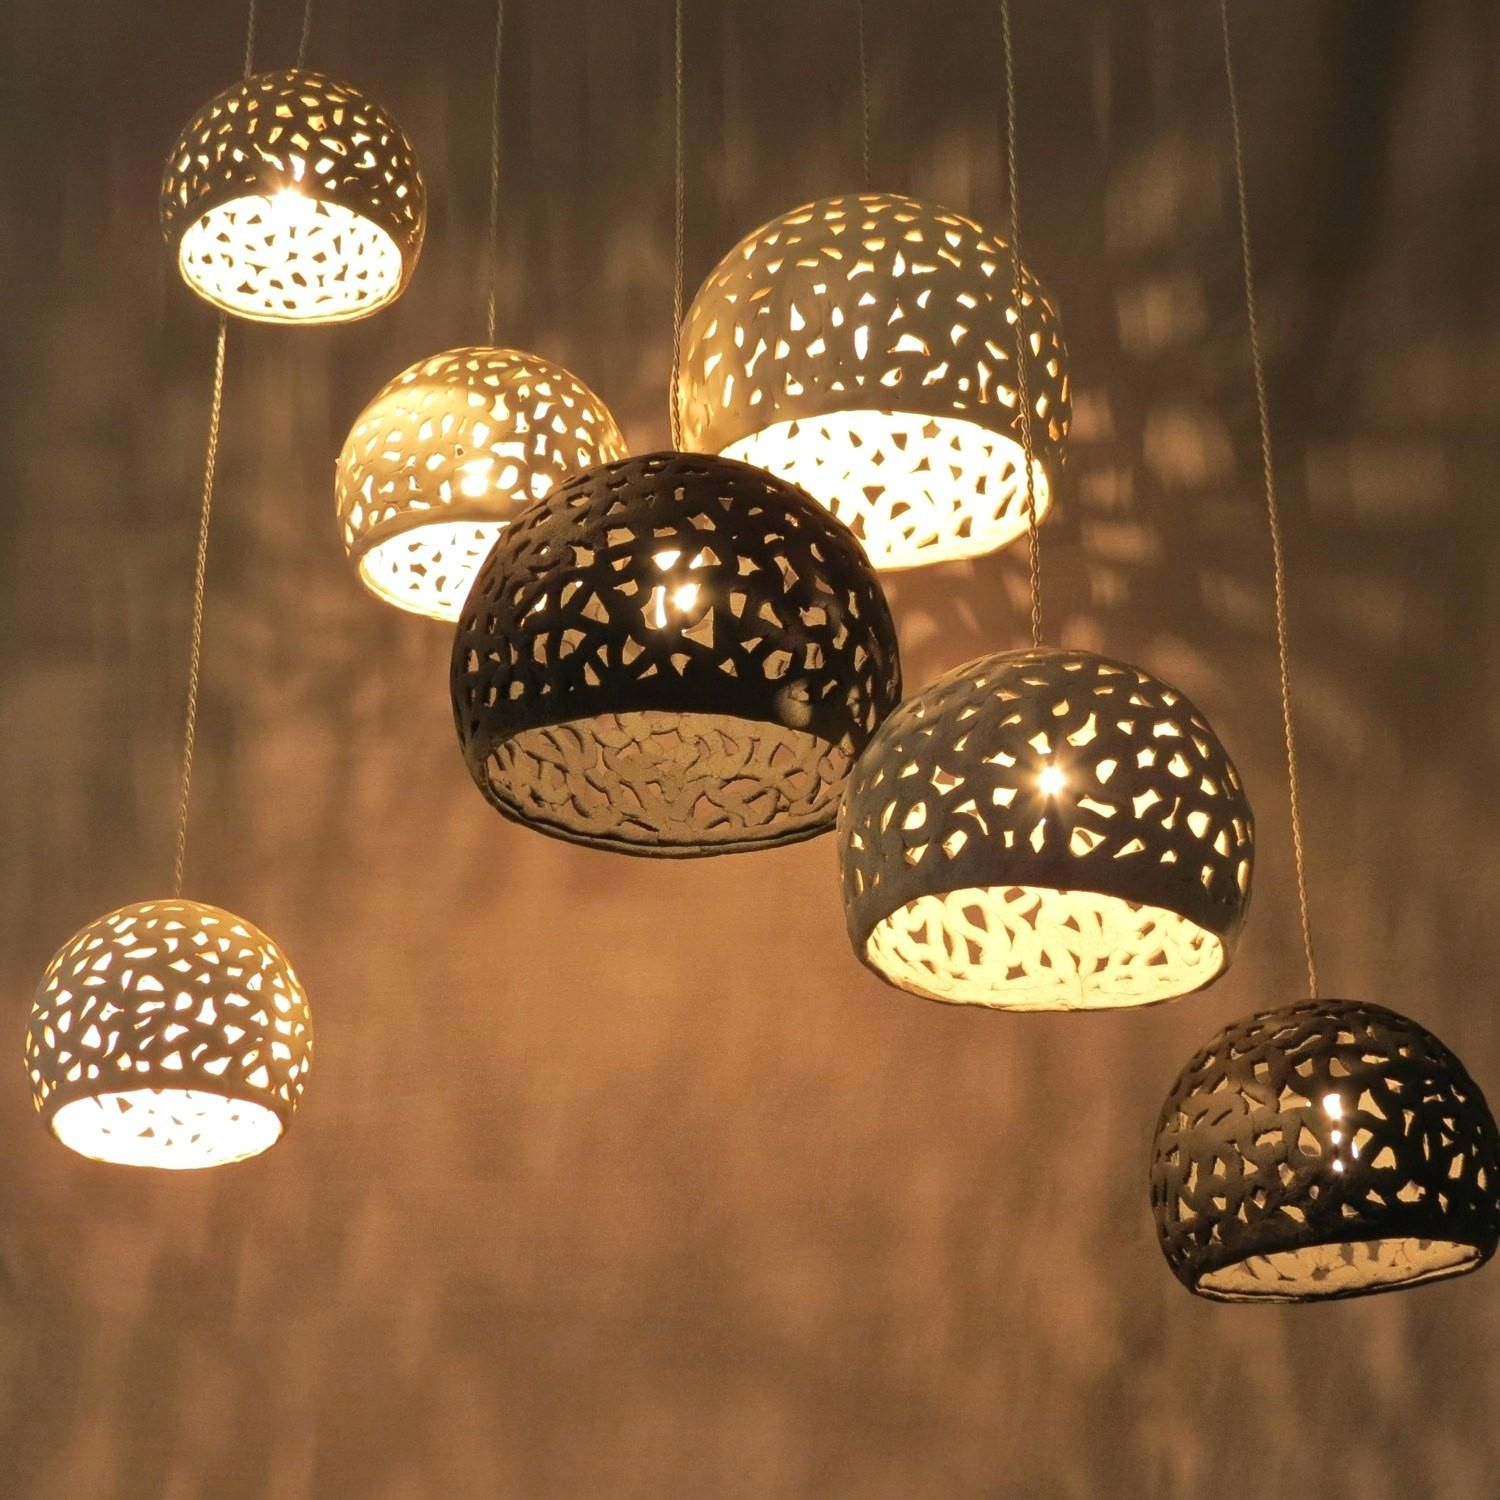 Ceiling Lights Battery Powered Ceiling Light Fixtures Led